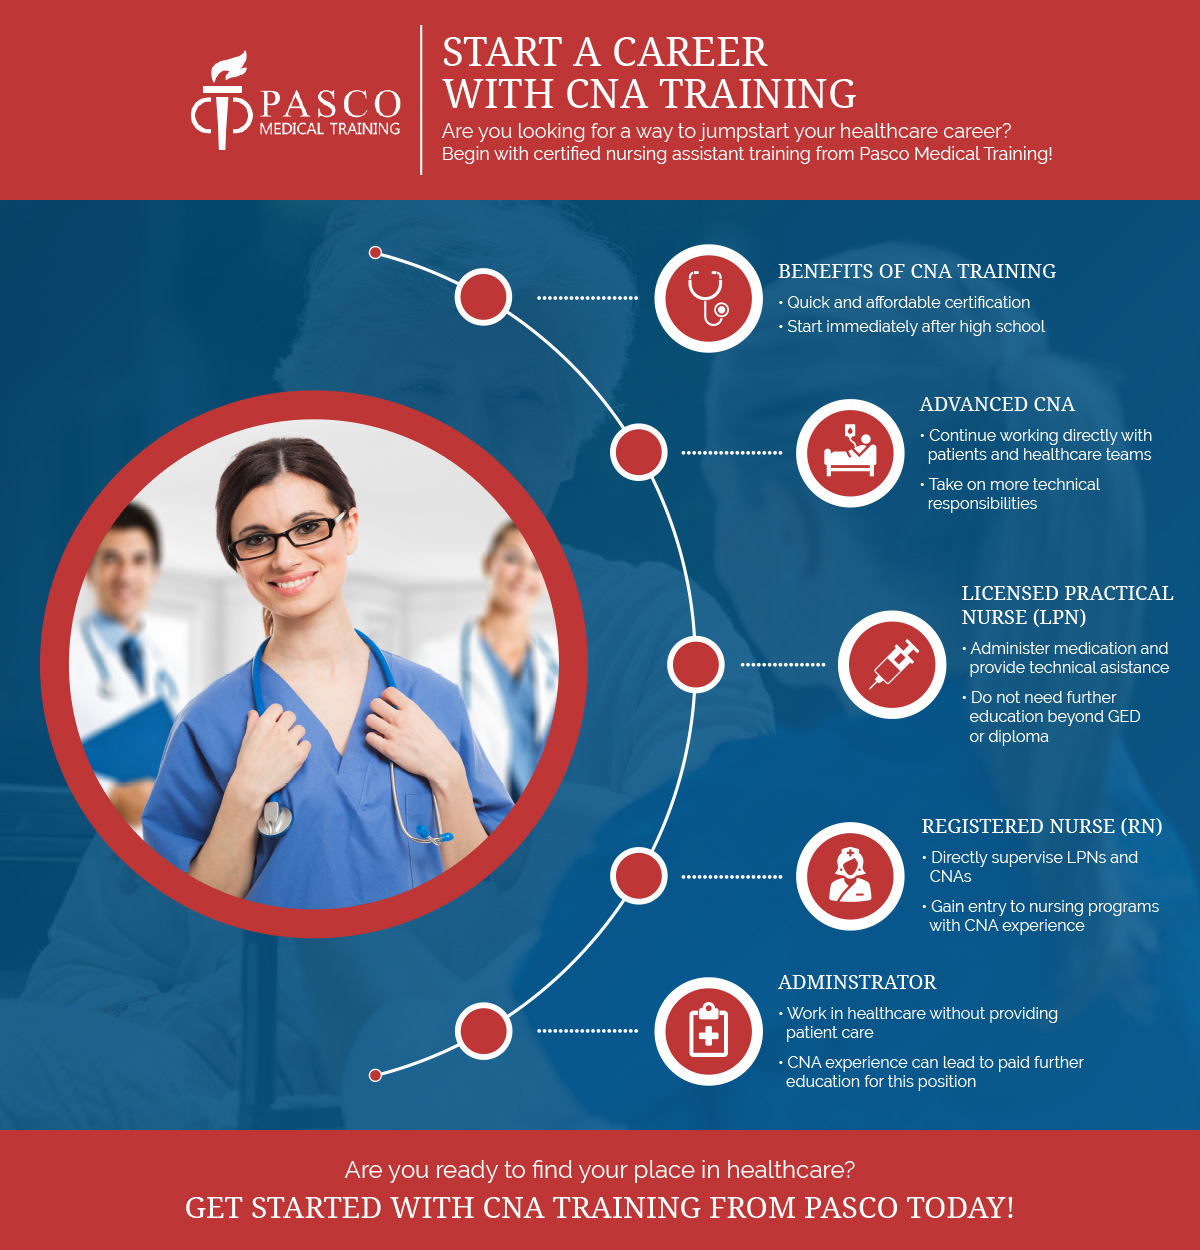 Start-a-Career-With-CNA-Training-Infographic